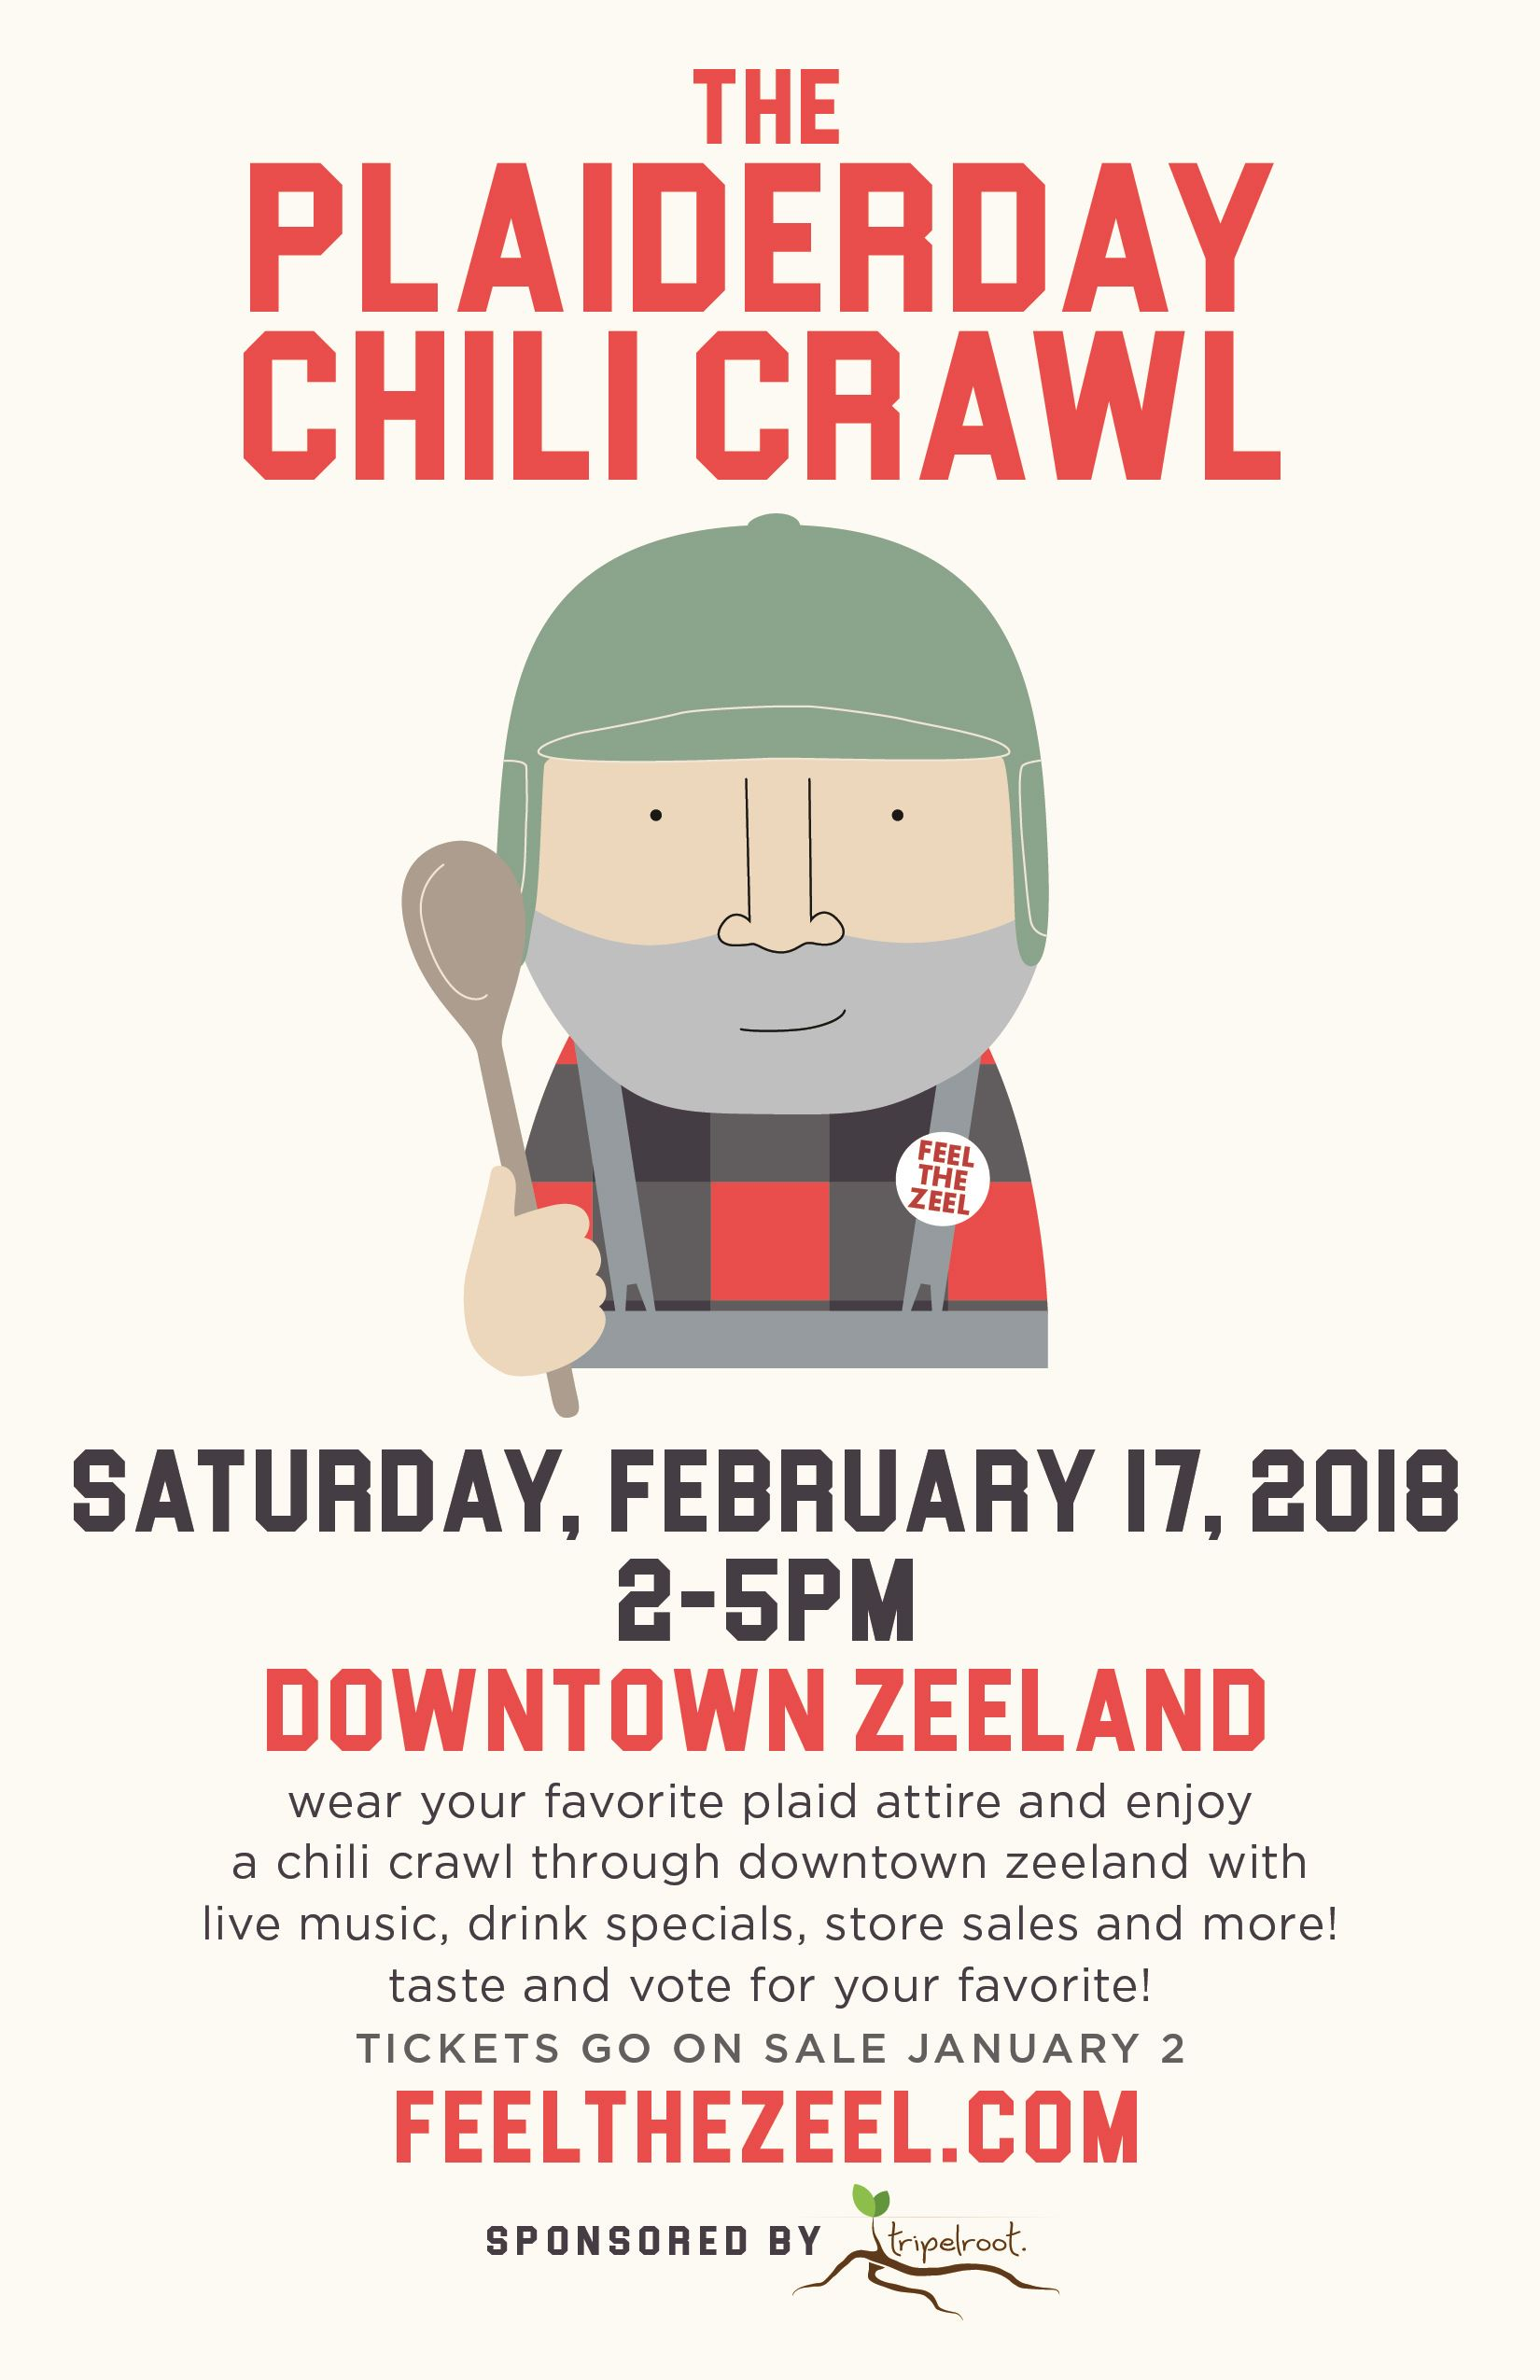 The Plaiderday 2018 Chili Crawl_Facebook Ad_Sponsored by Tripelroot